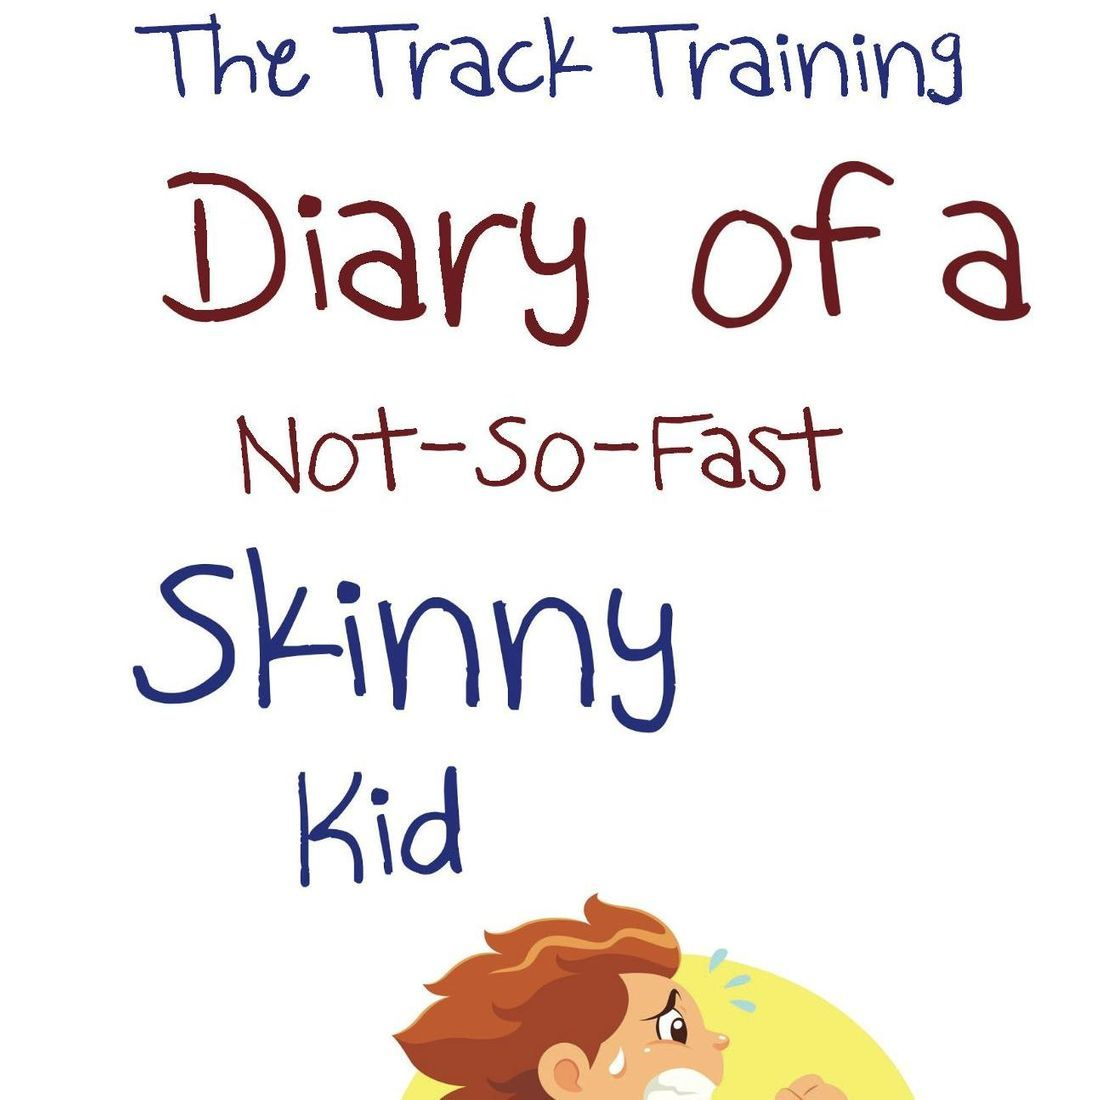 Skinny Kid, Diary of a, Skinny Kid,